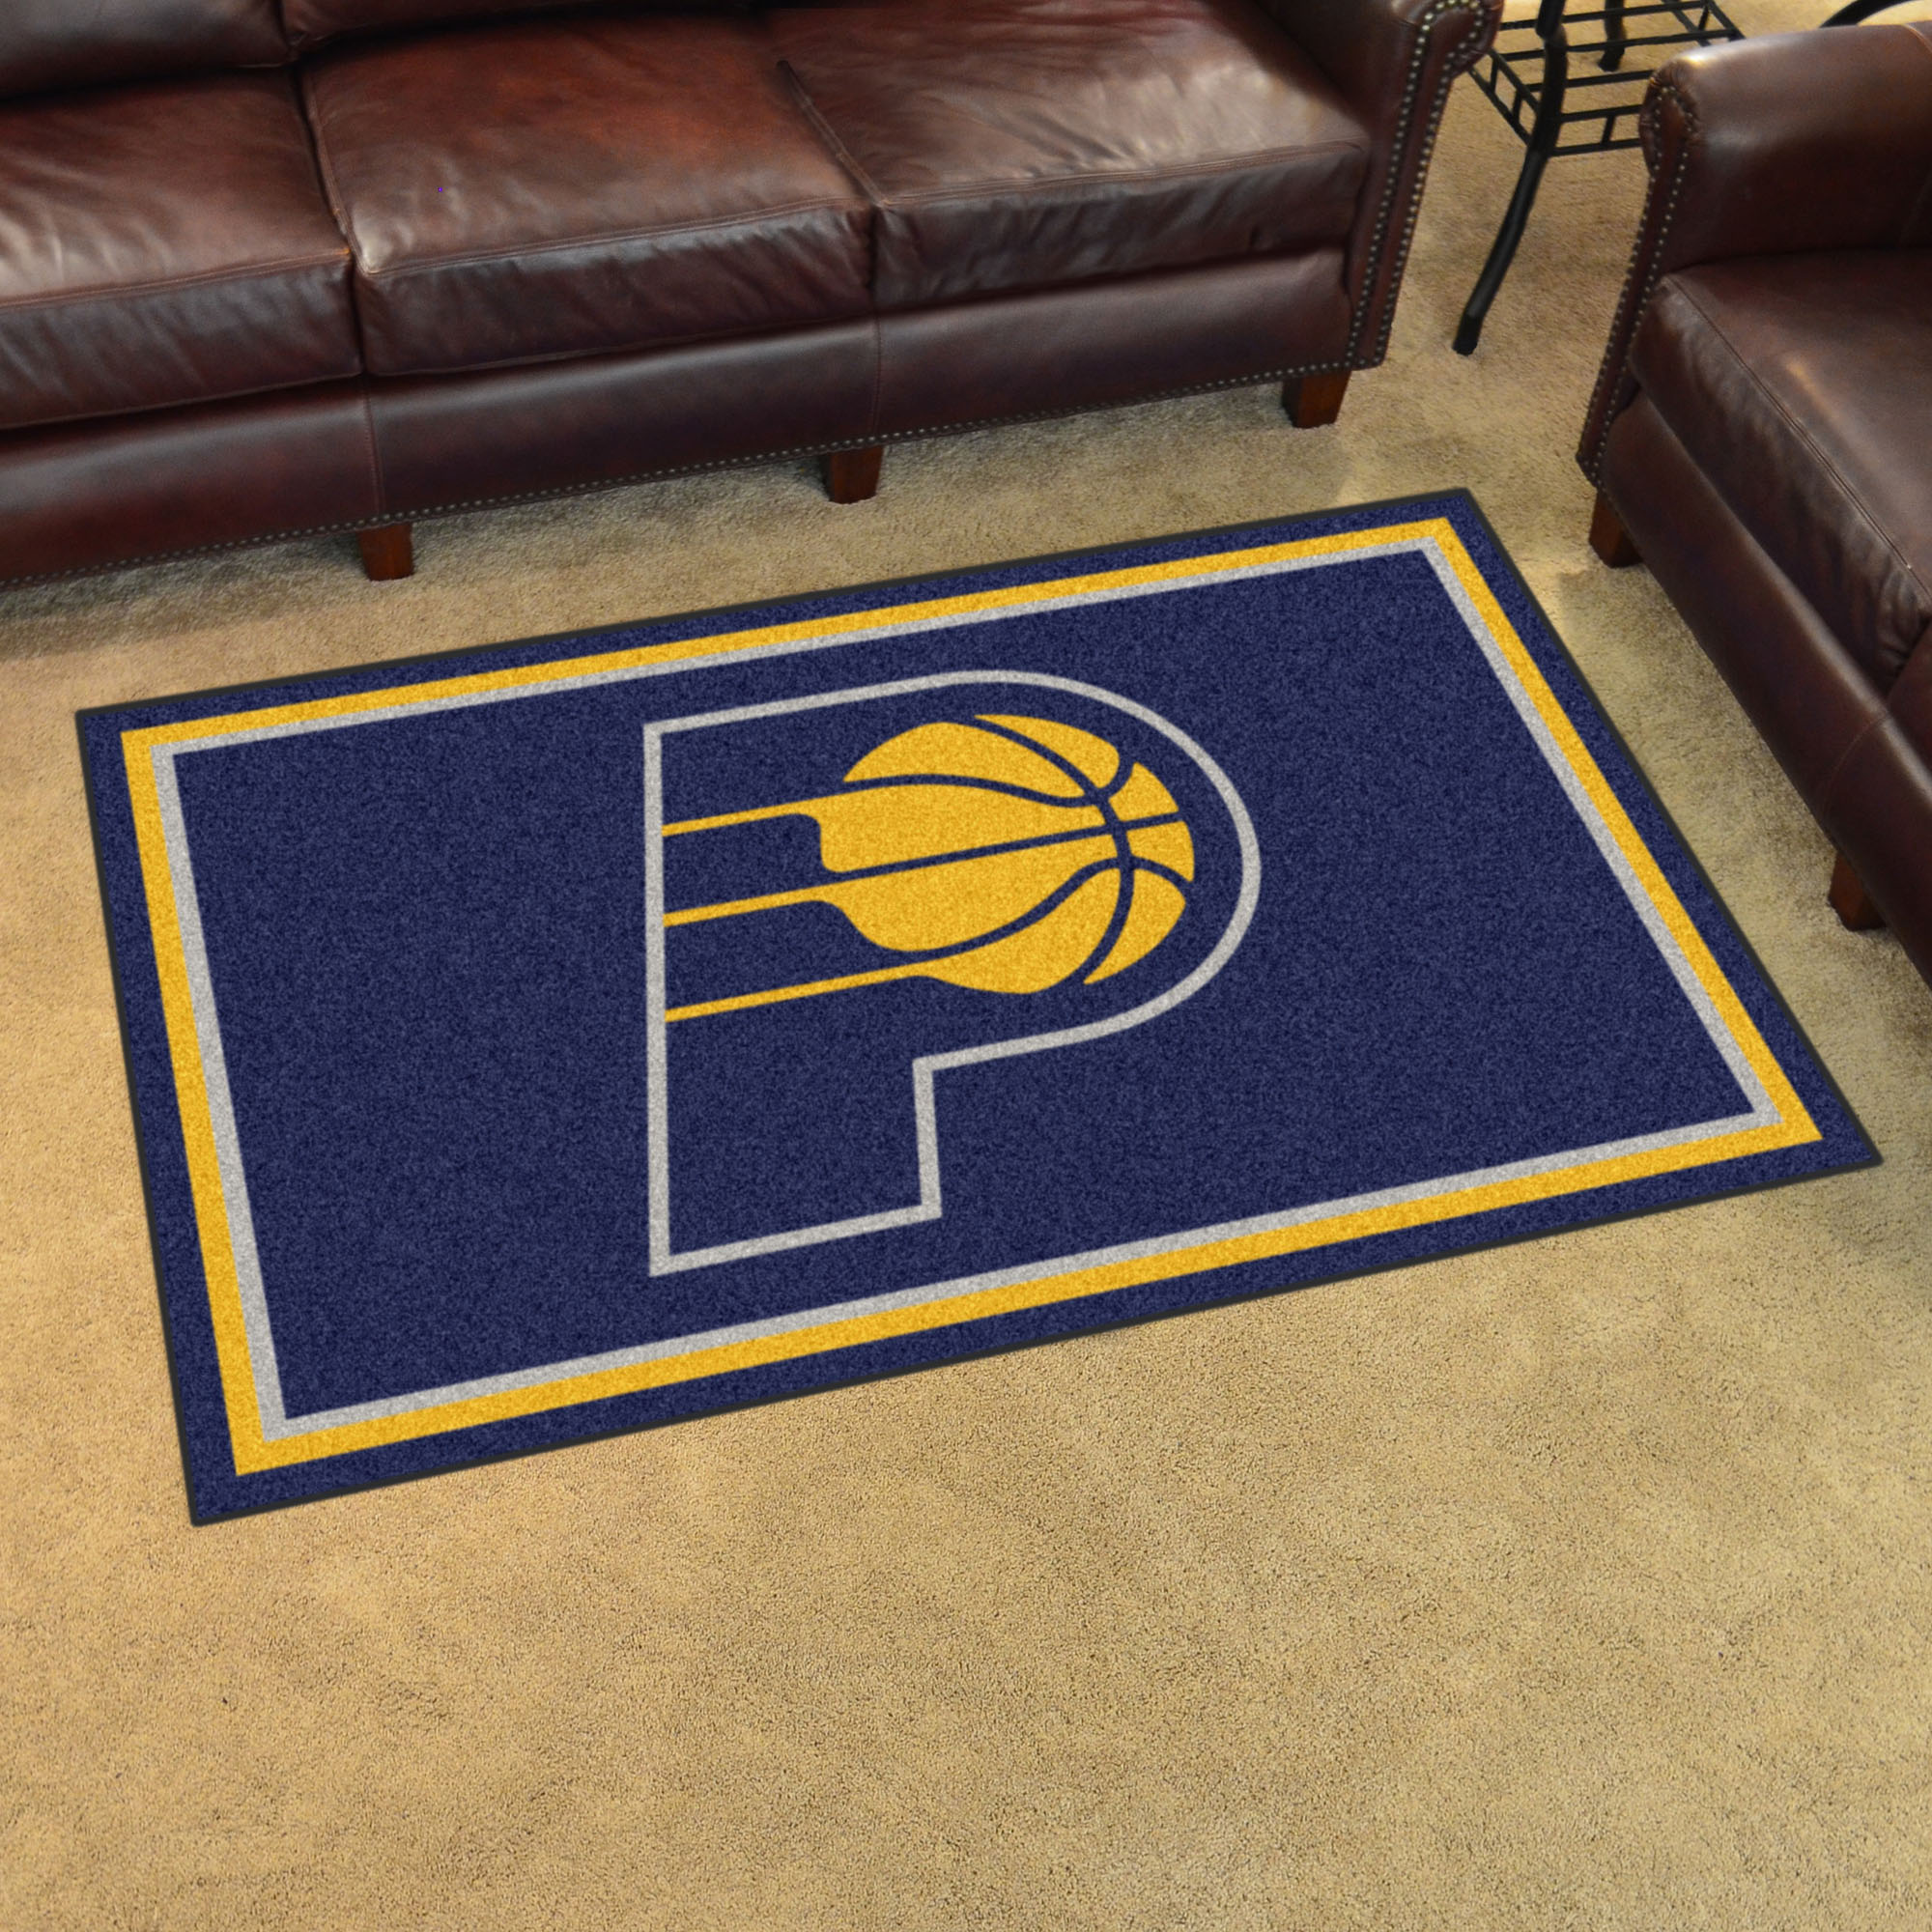 Indiana Pacers 4x6 Area Rug